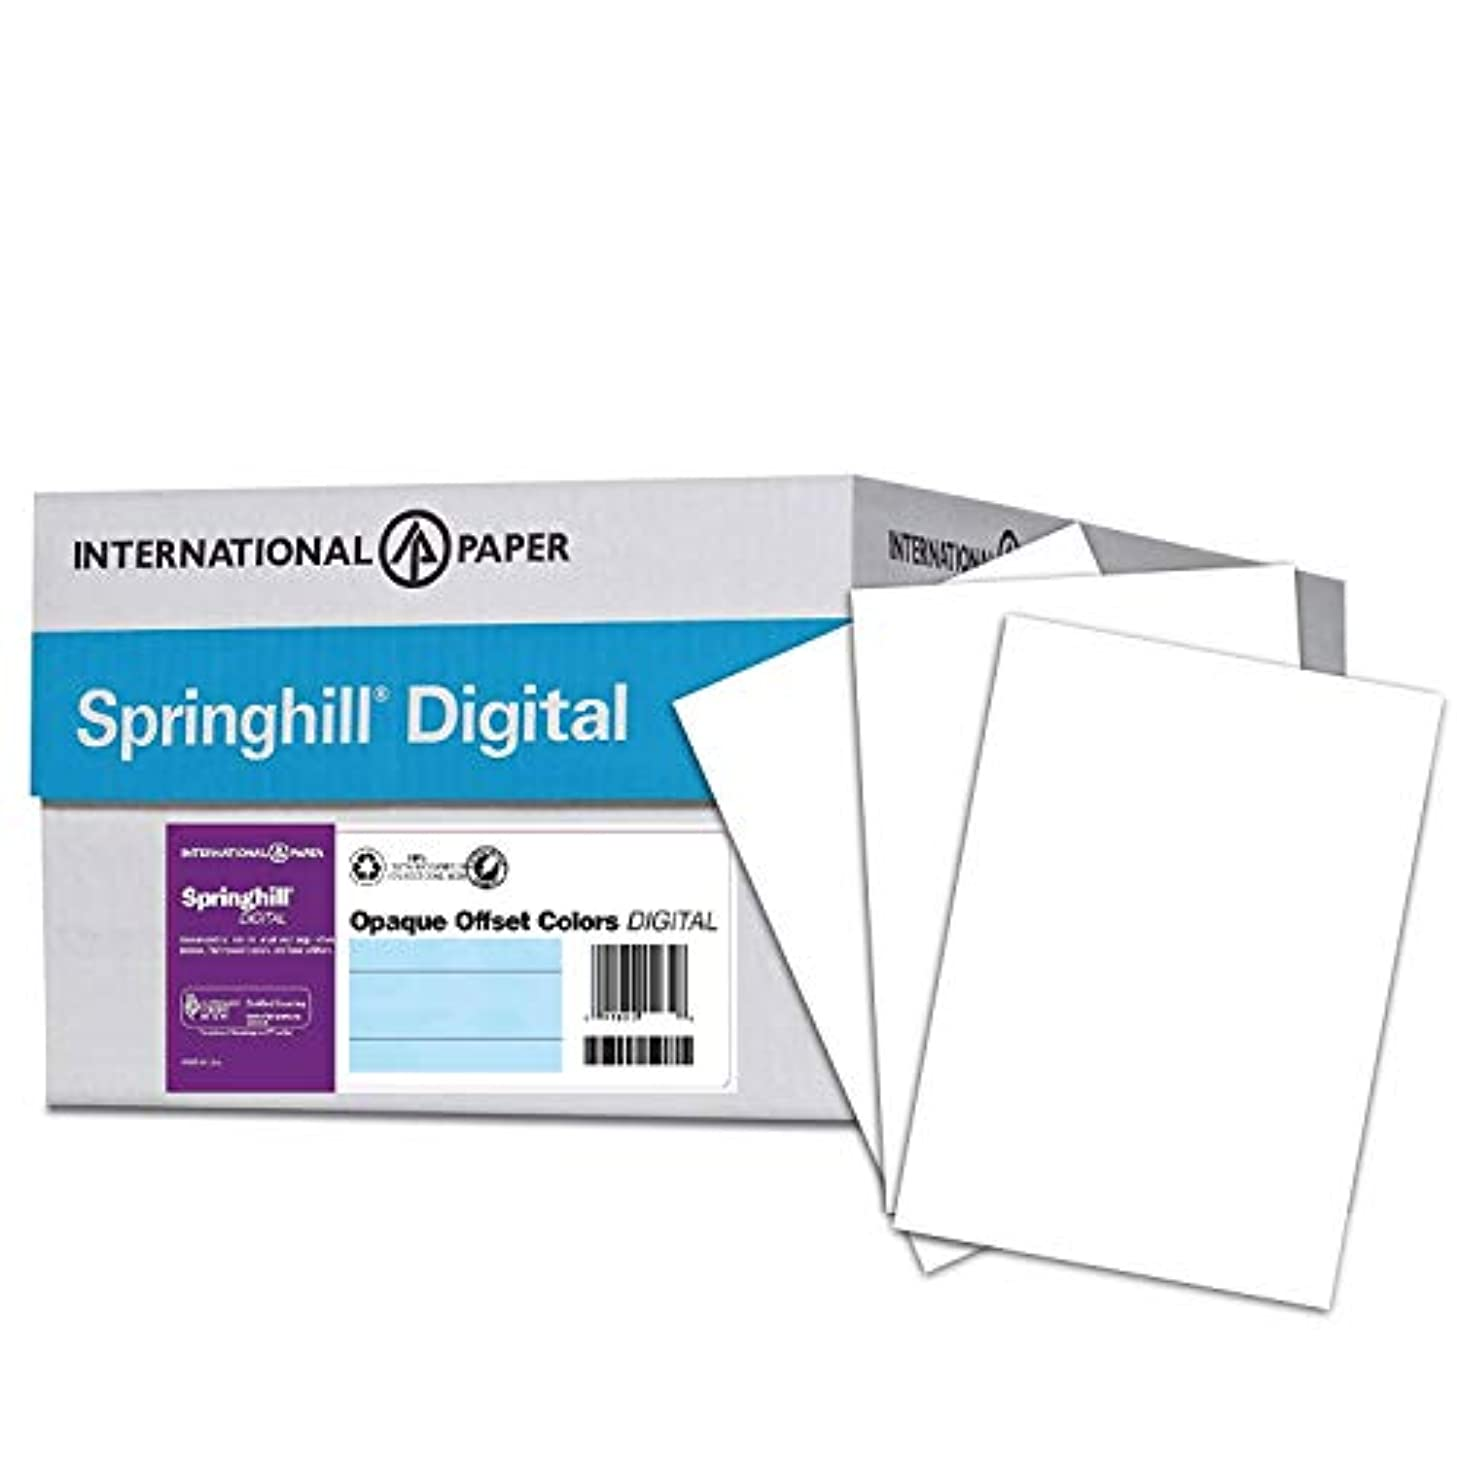 Springhill Cardstock Paper, White Paper, 80lb, 175gsm, 11 x 17, 92 Bright, 4 Reams/1,000 Sheets -  Vellum Card Stock, Thick Paper (016204R)